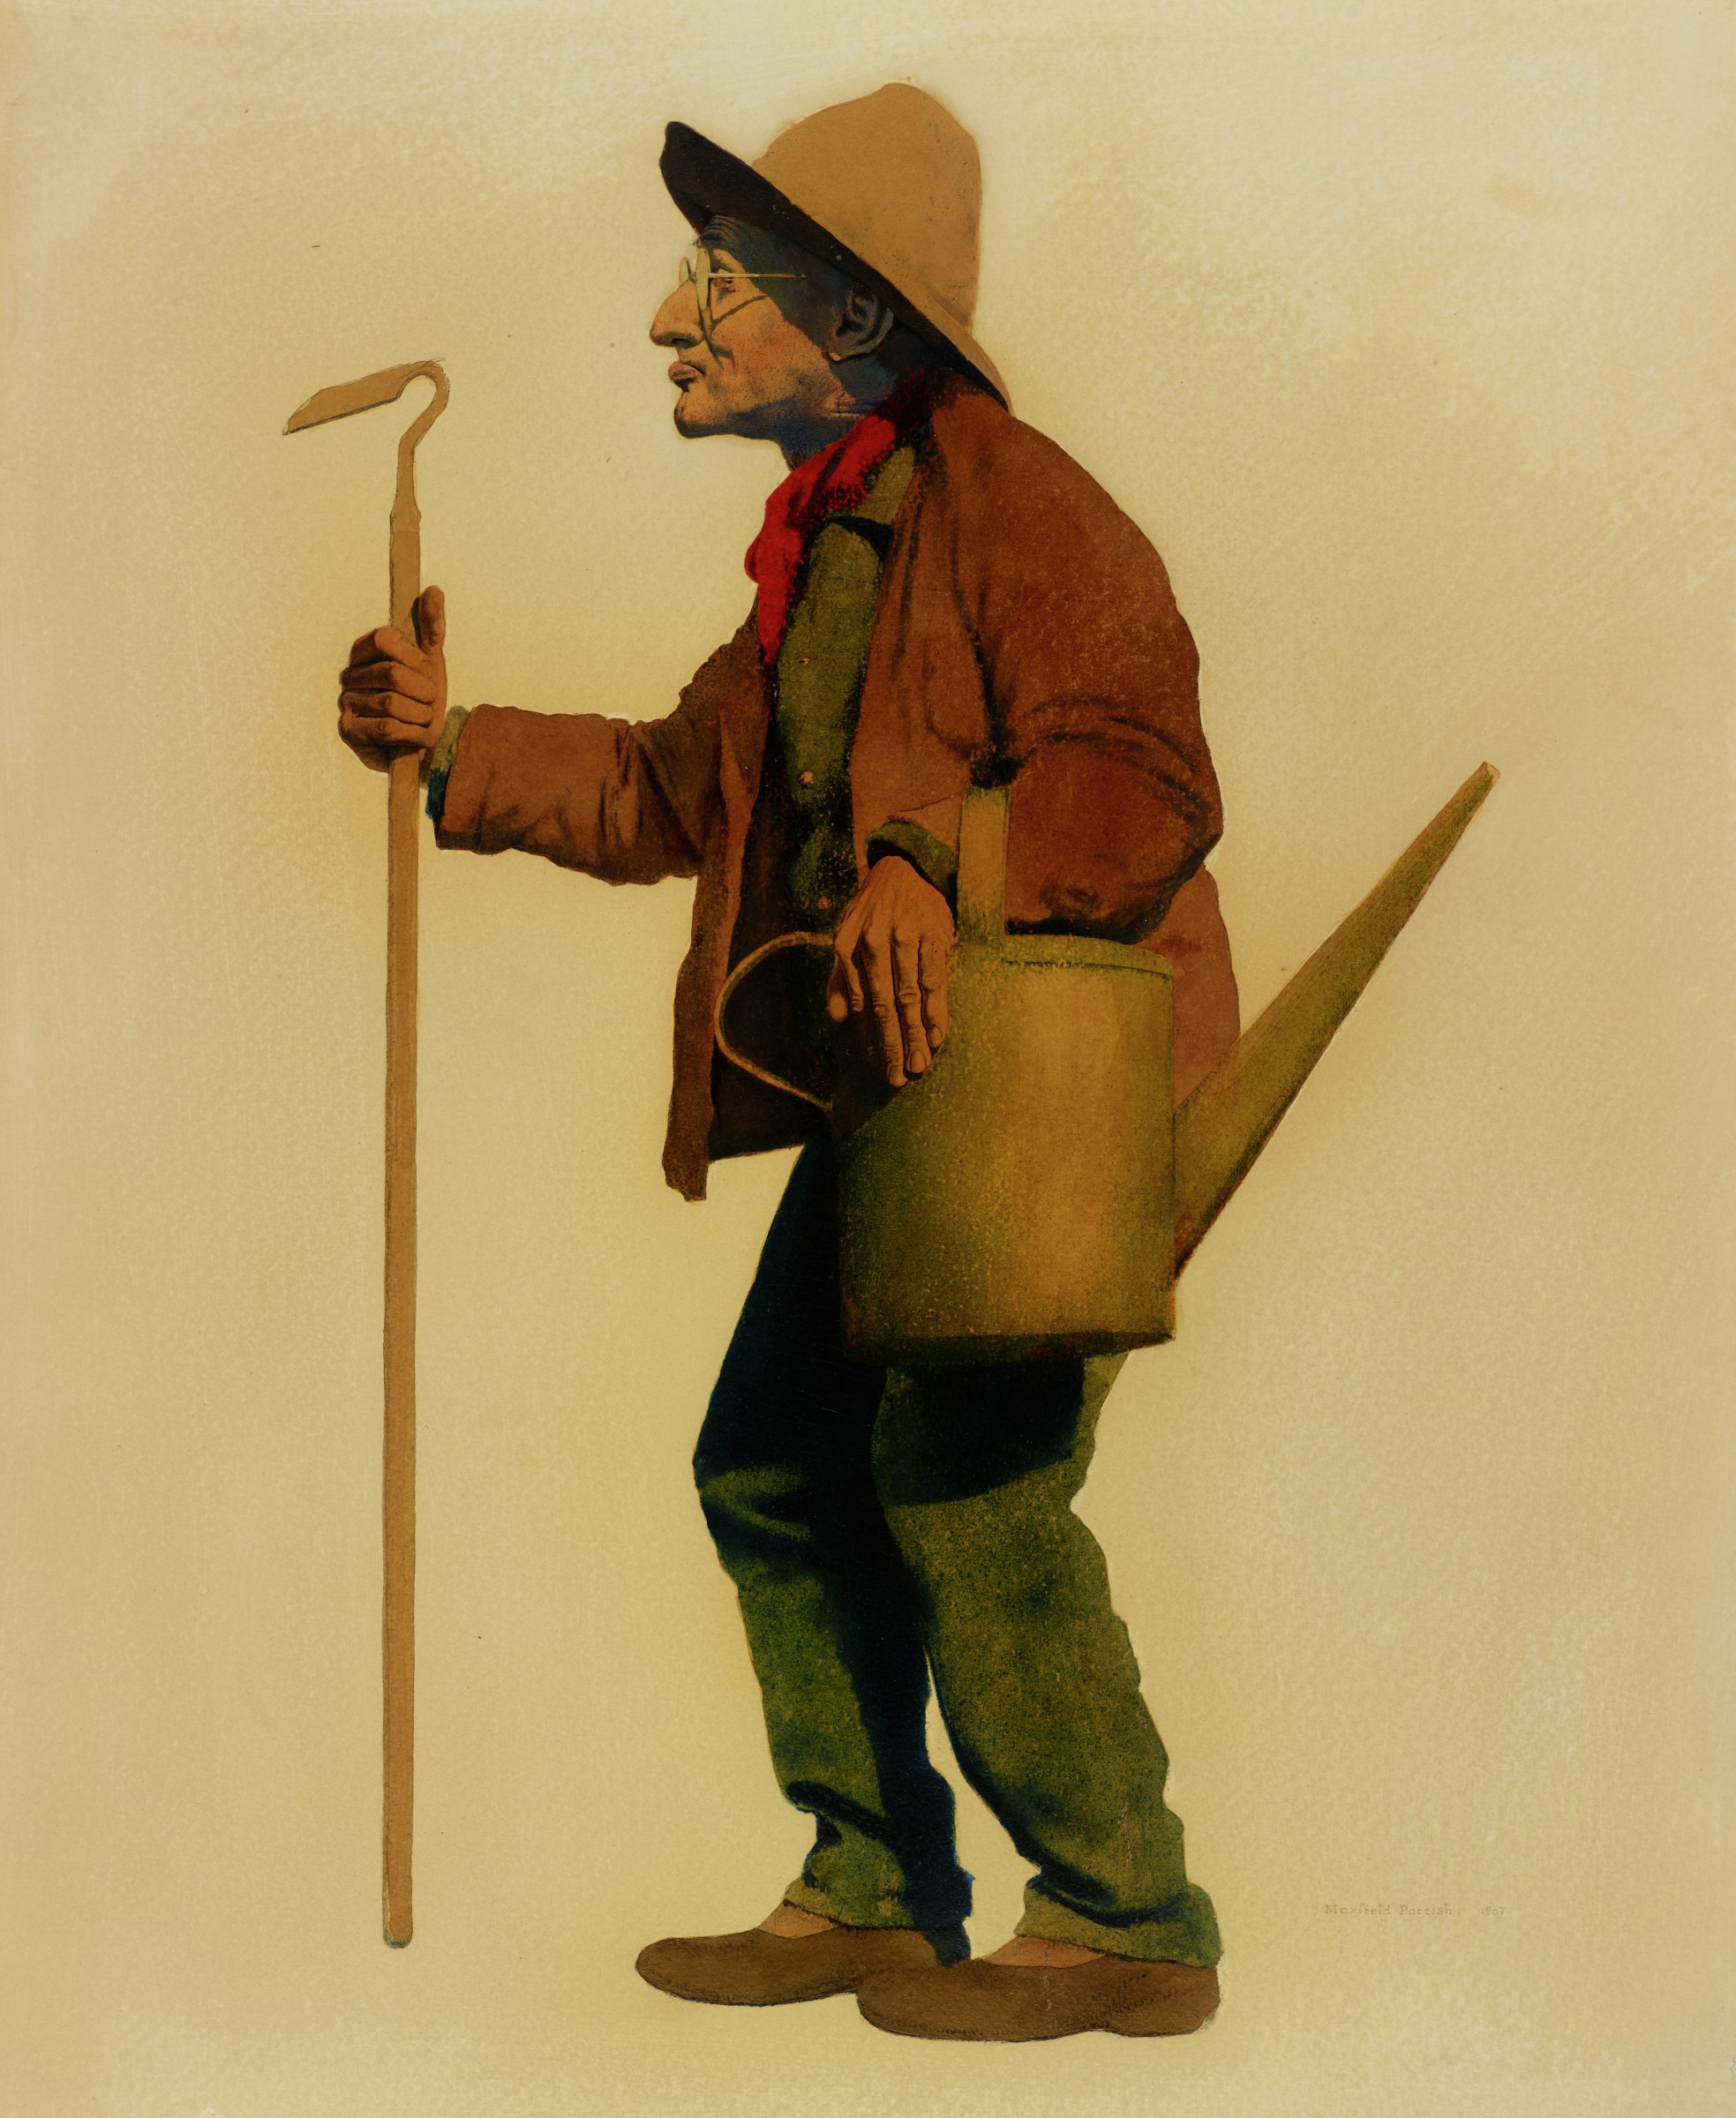 Elderly bespectacled man, with a wry visage, in profile, facing left. He wears a brown full-brimmed hat and coat, blue workman's shirt and pants, and a red neckerchief. In his right hand, he carries a garden hoe. With his left arm he carries a green watering can, his arm looped through the handle.